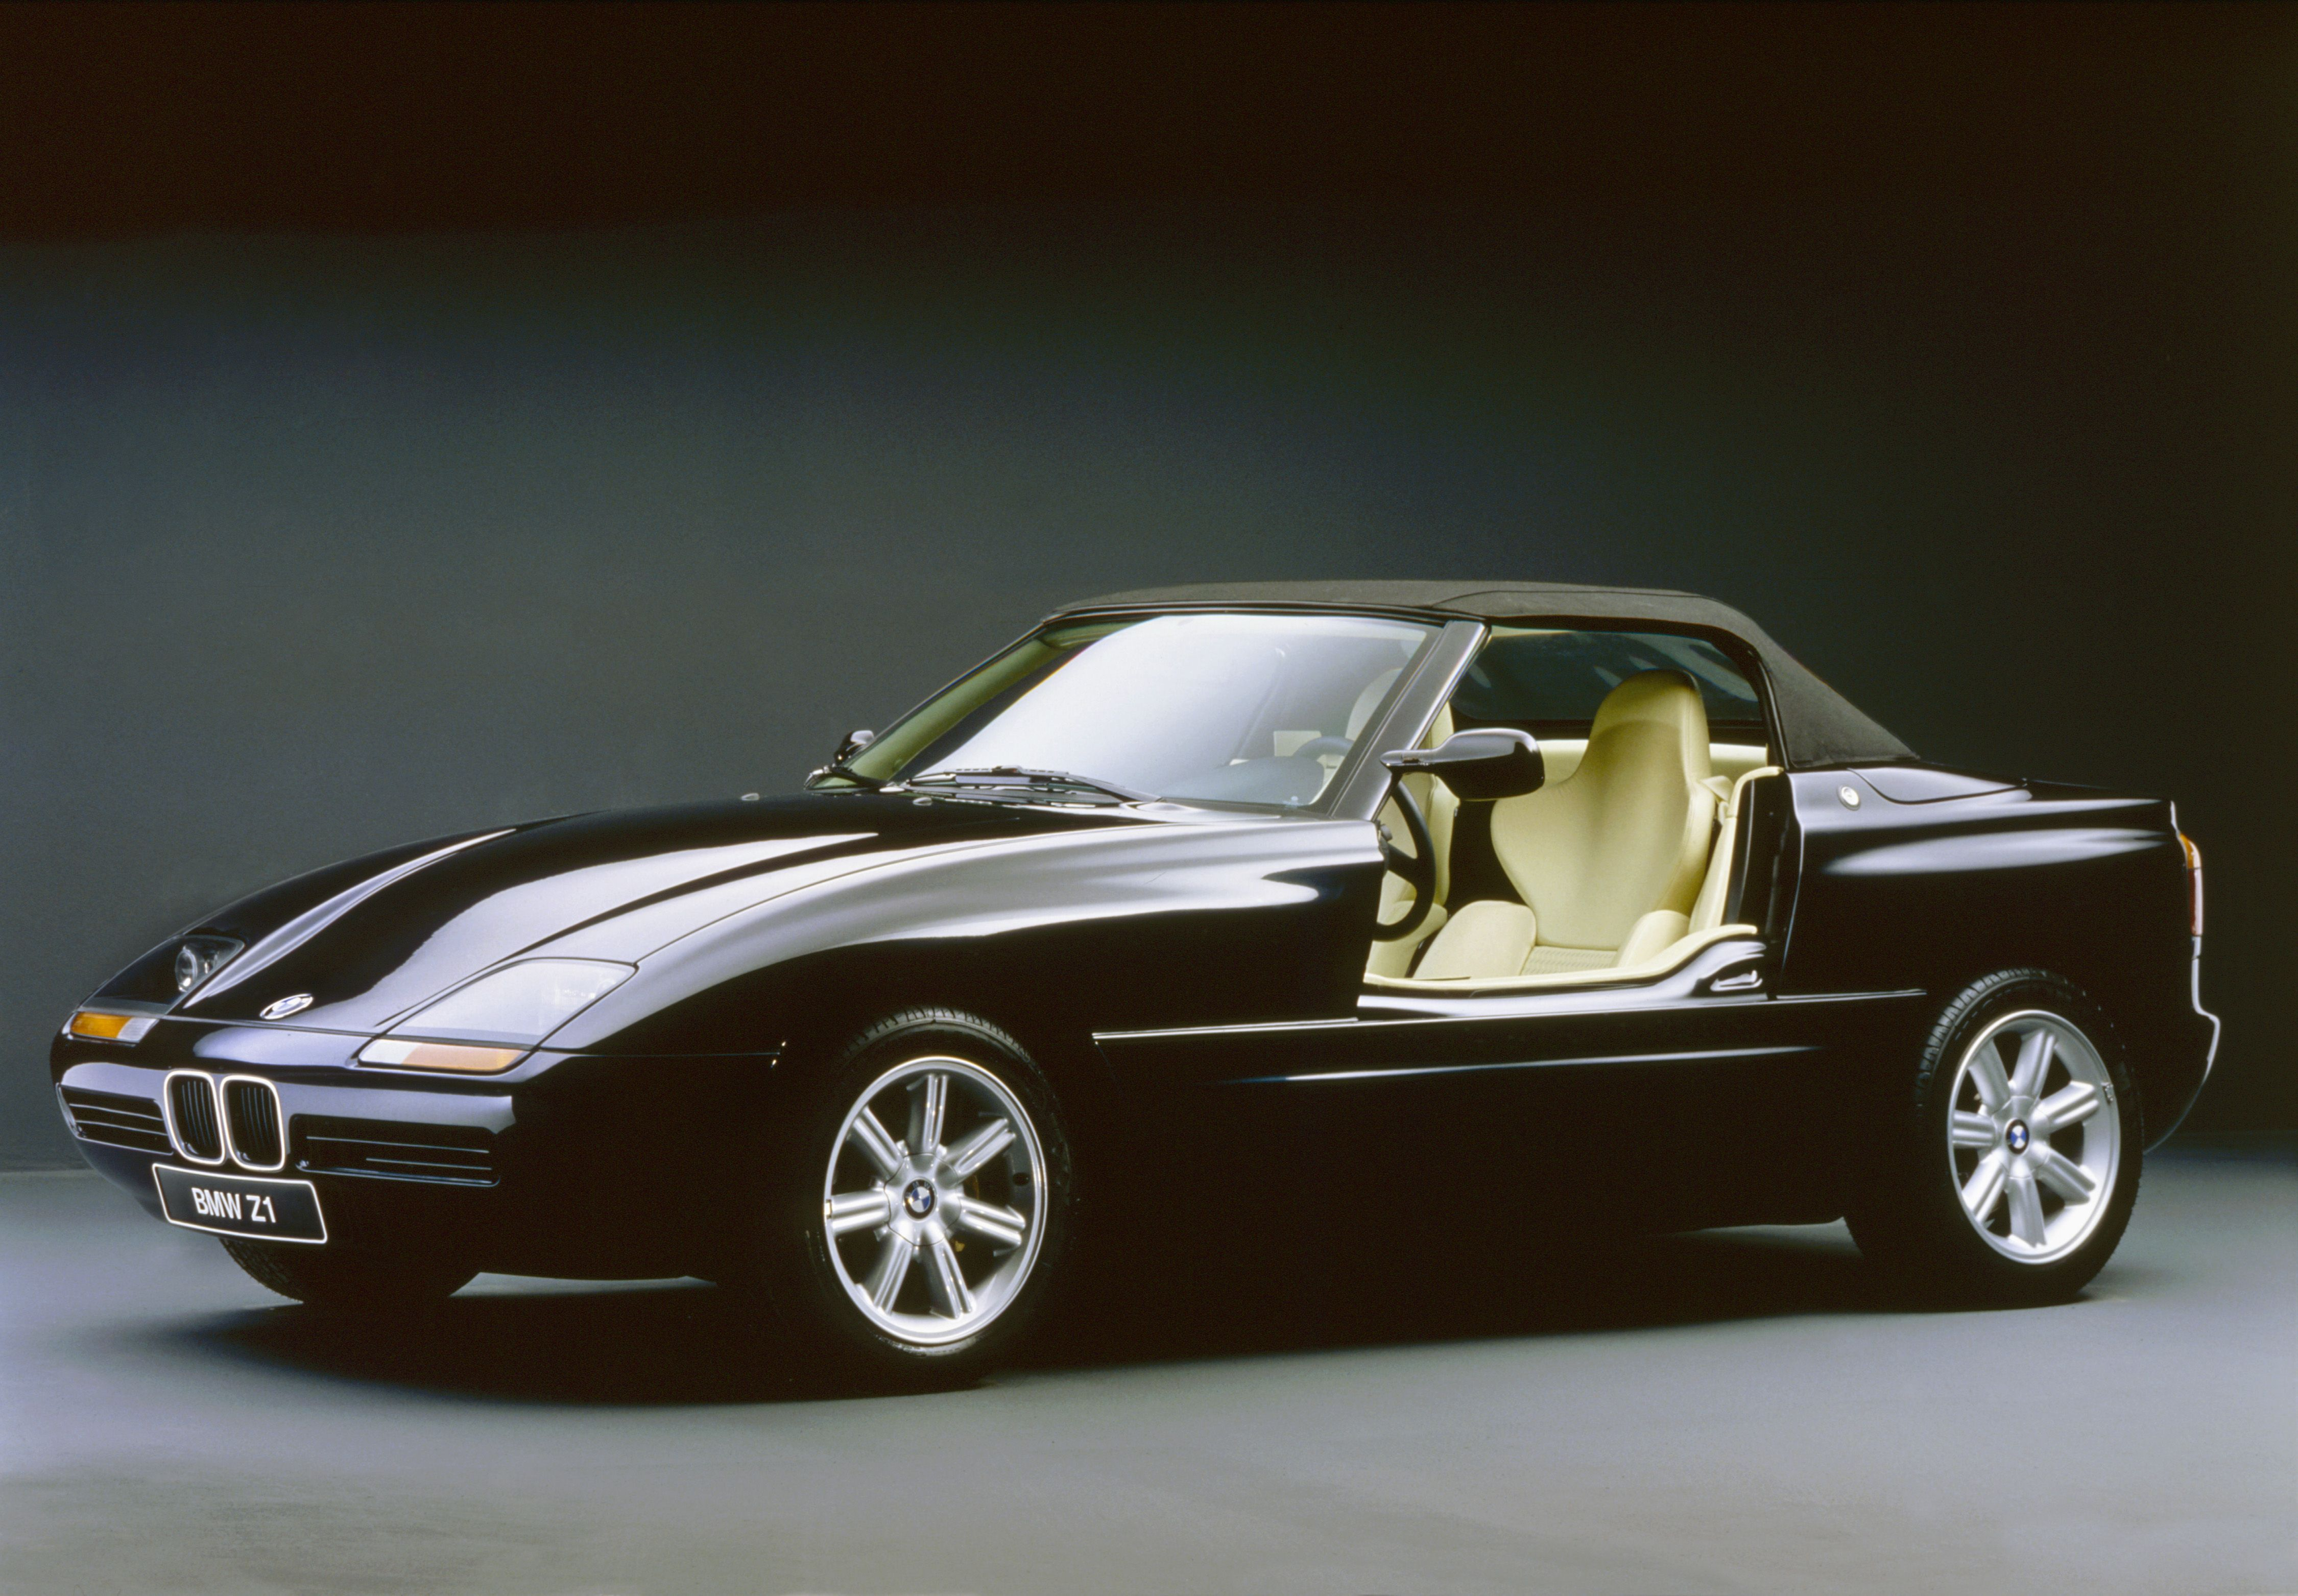 p90096530-highres-bmw-z1-1988-1991-06-1500989211 Stunning Bmw Z1 Hardtop for Sale Cars Trend